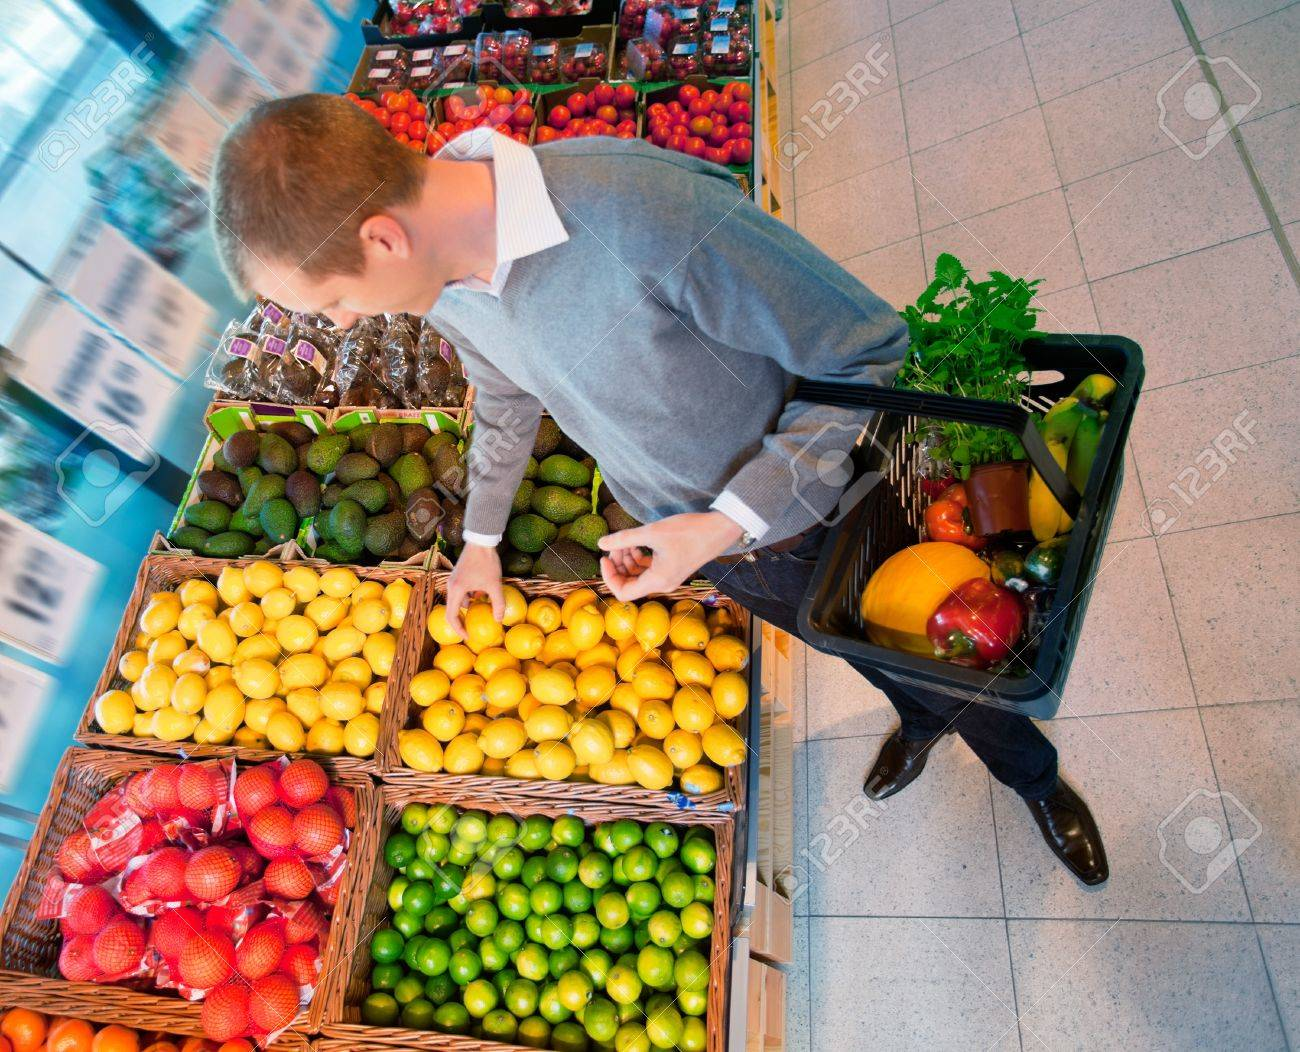 High angle view of a man carrying basket while buying fruits in the supermarket Stock Photo - 9887406